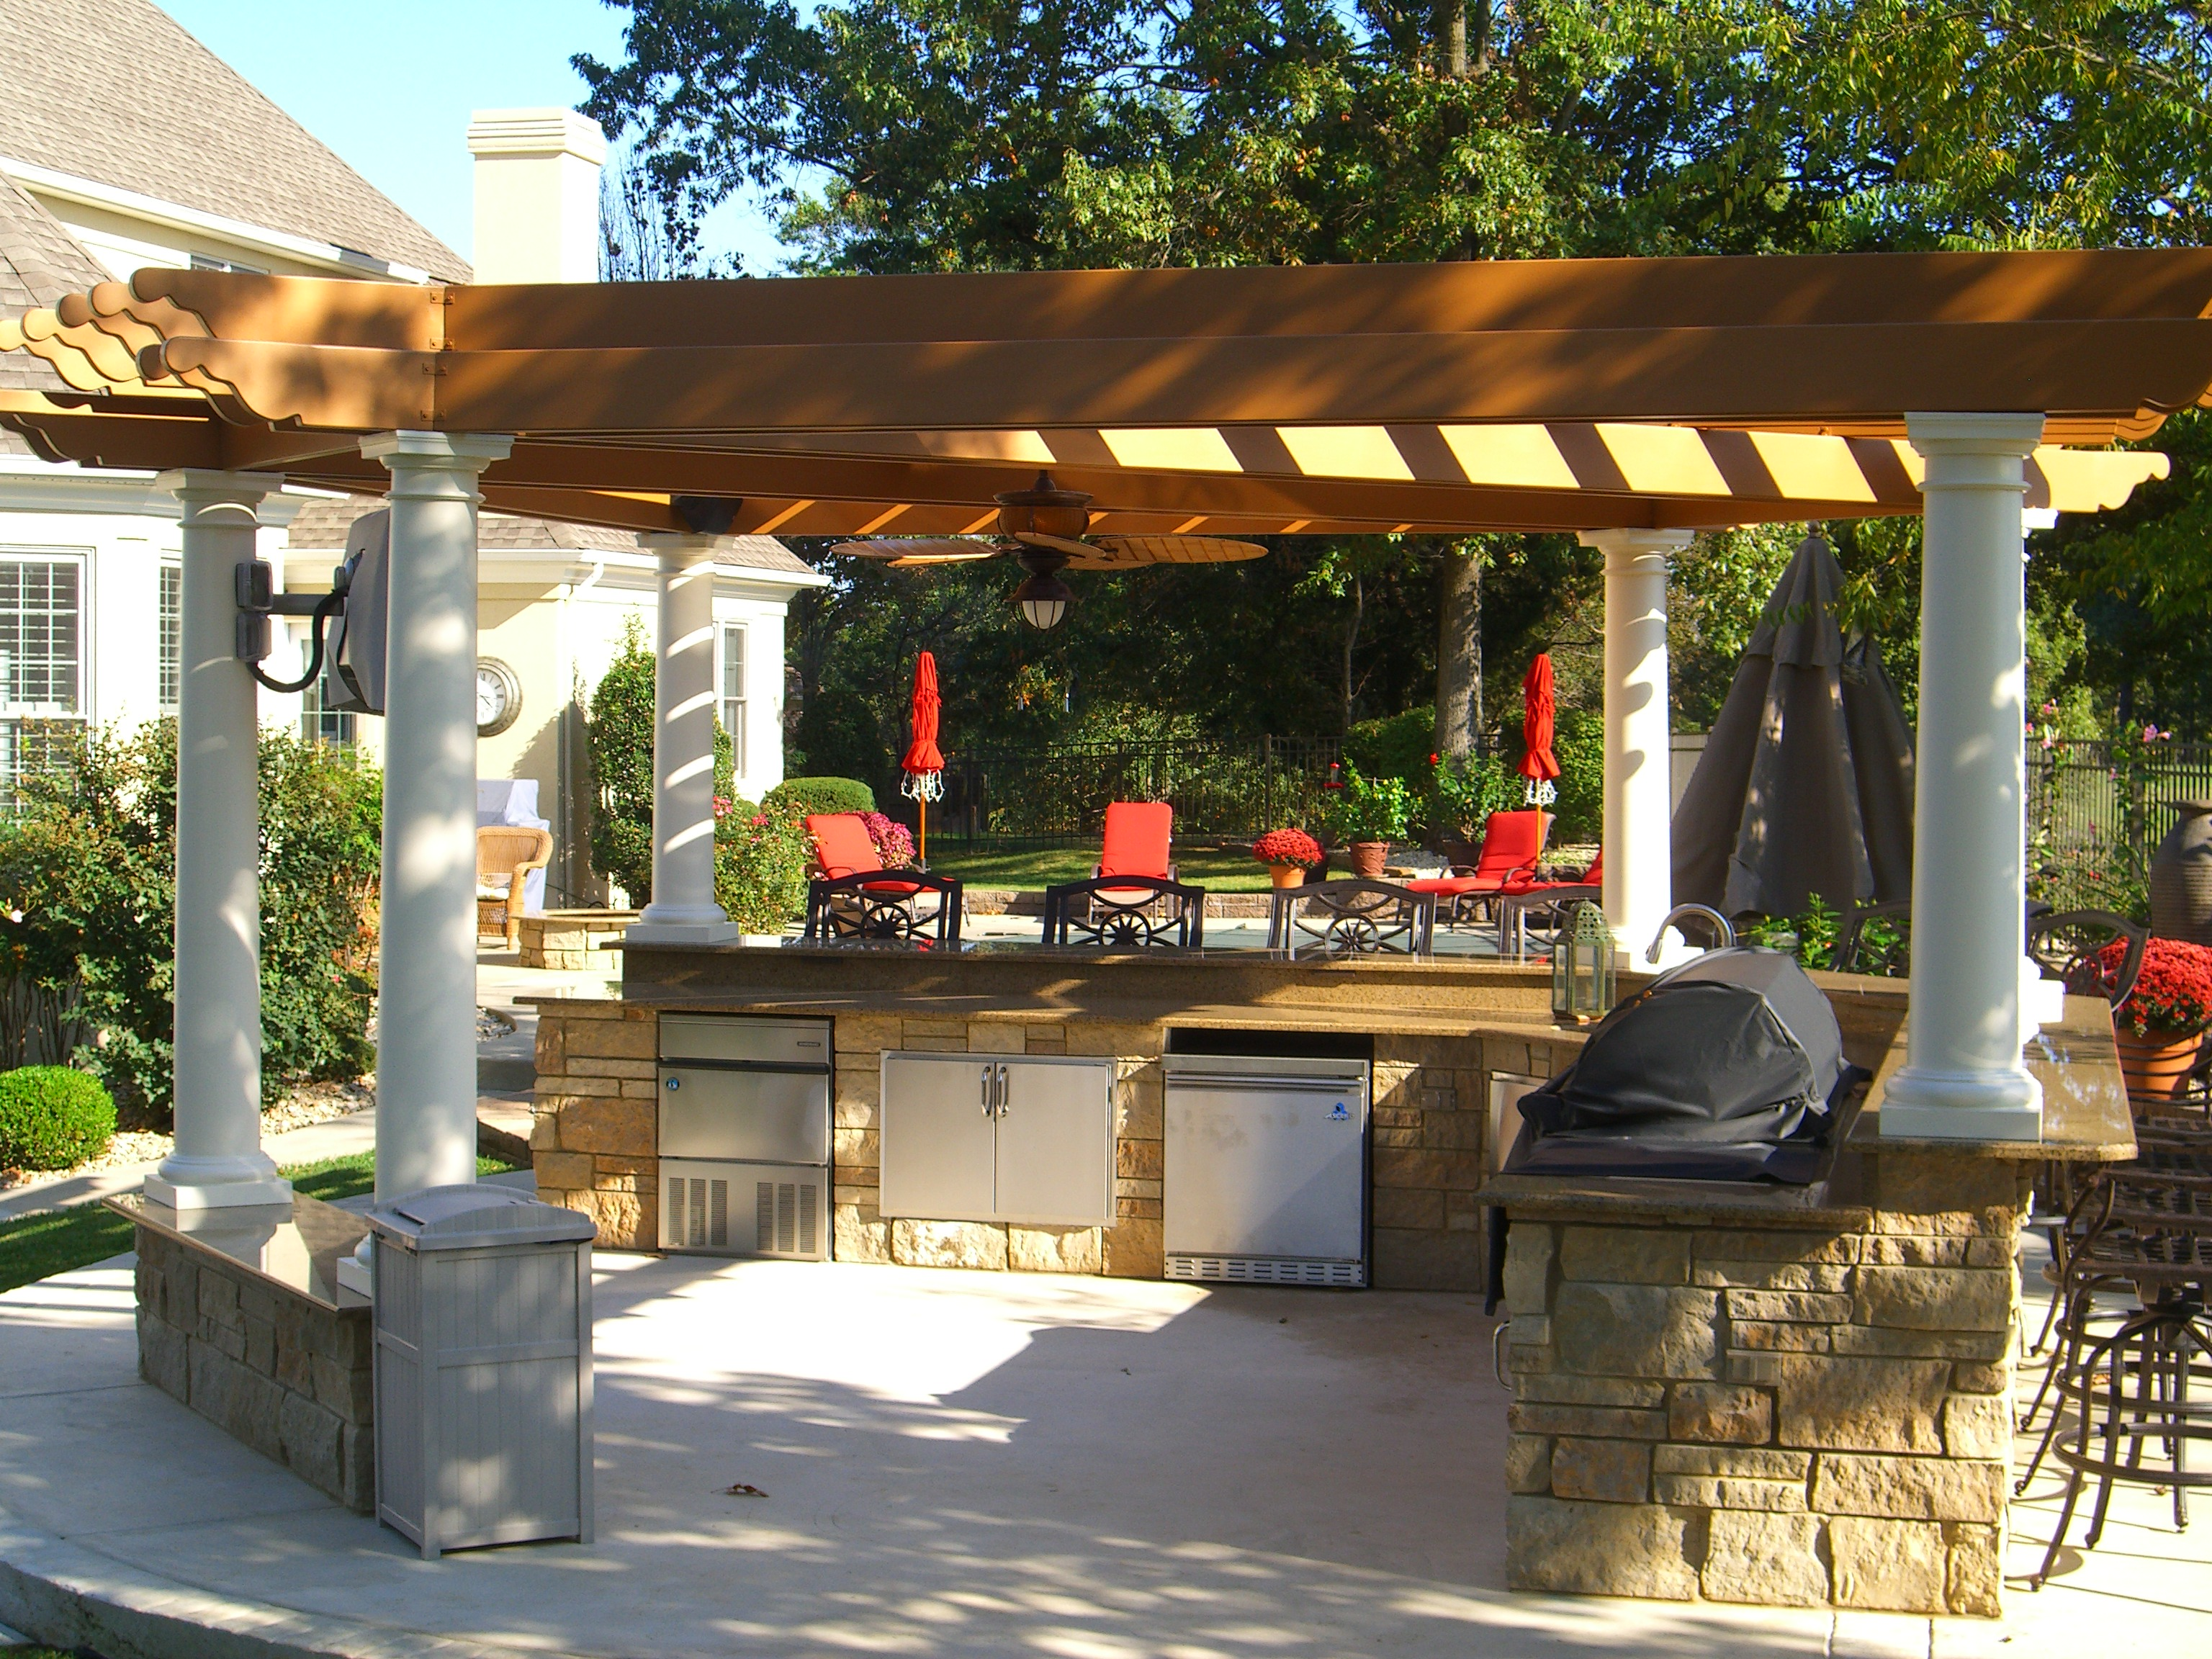 Outside Patio Alfresca Outdoor Living Patio Covers Designed For The